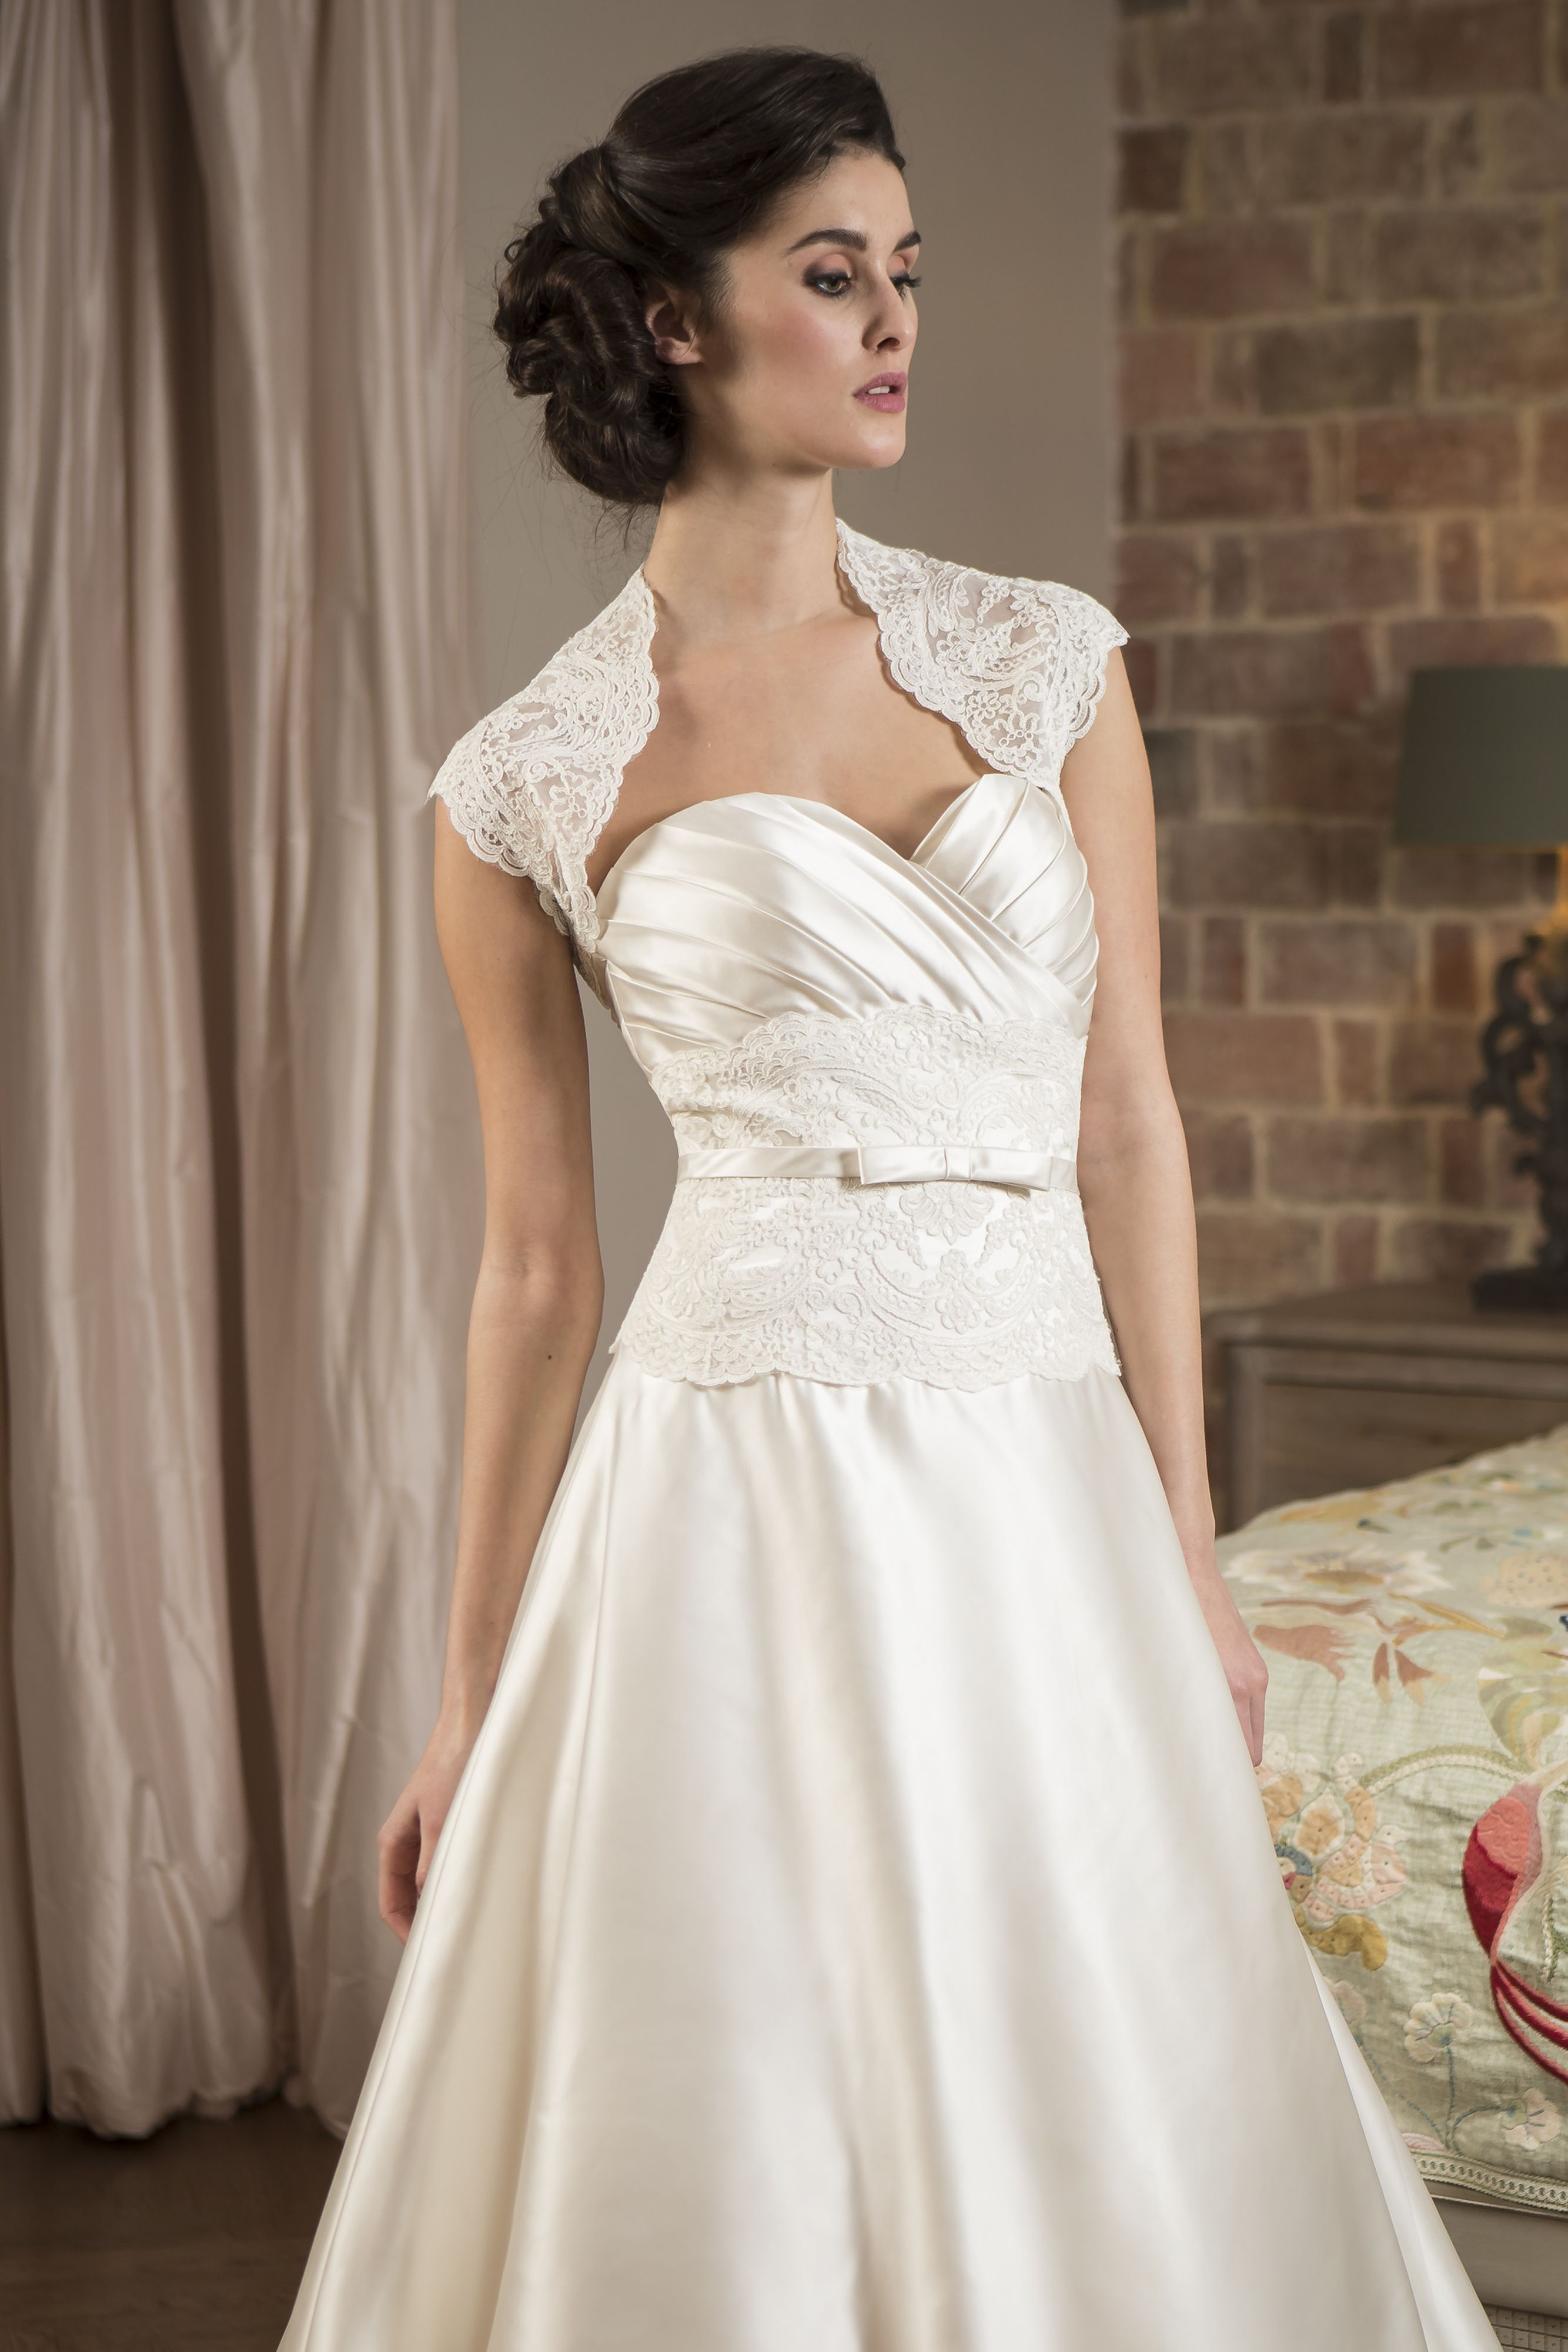 Pin by Béatrice Orain on guipure Dresses, Bridesmaid